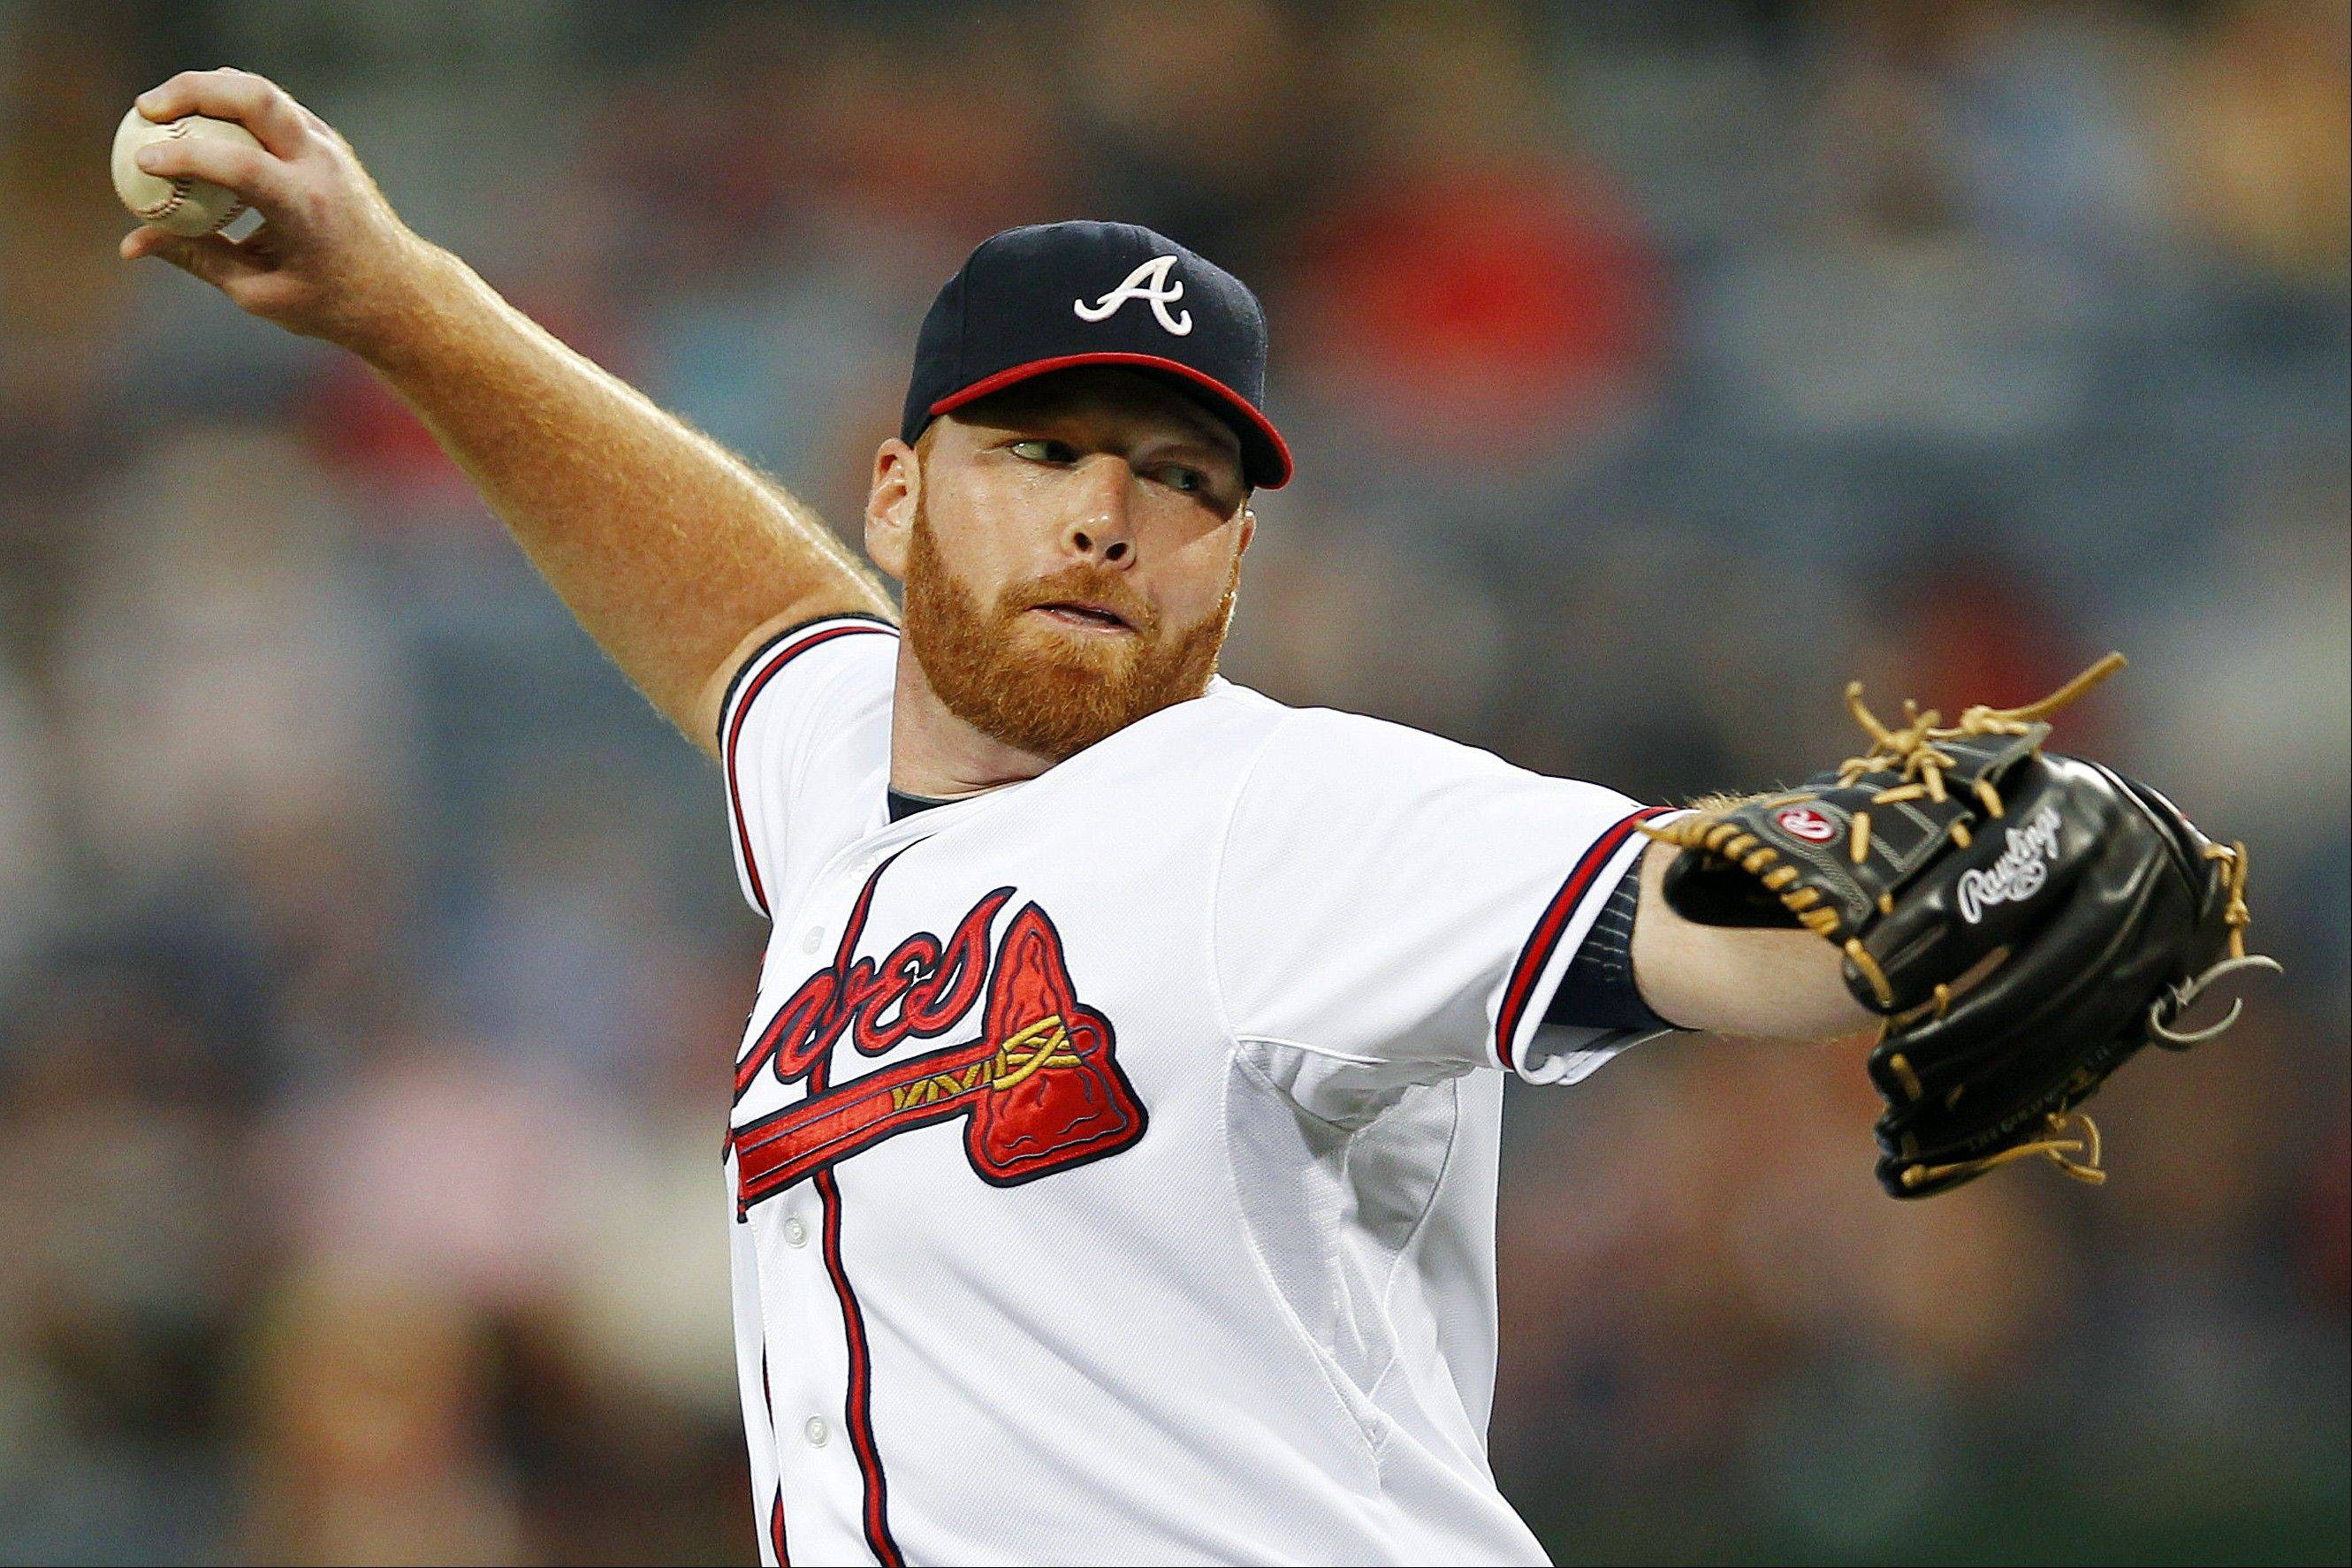 Atlanta Braves starting pitcher Tommy Hanson struck out four and walked two Thursday night at home against Miami.